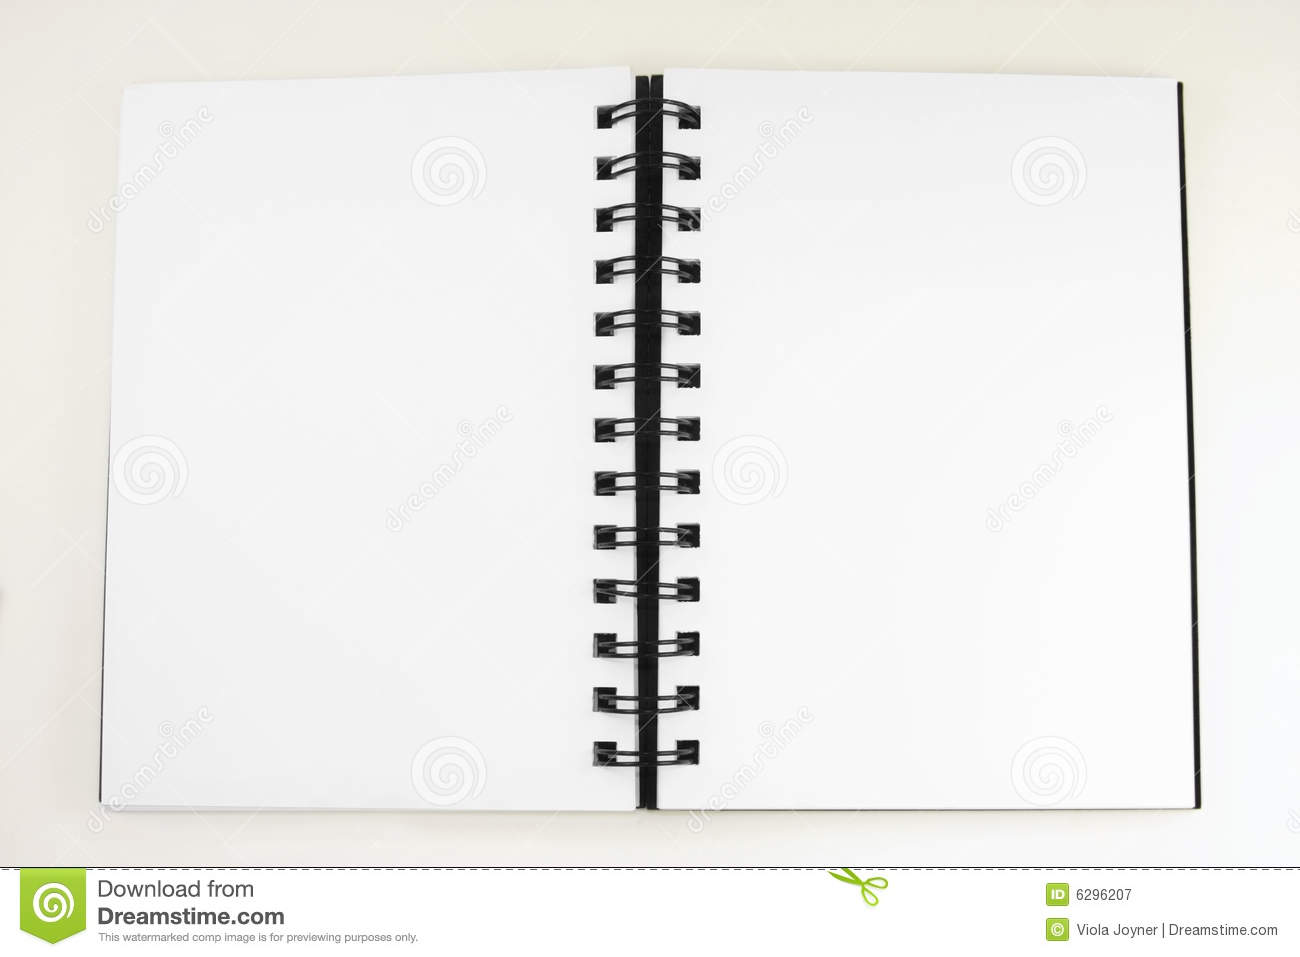 Black journal open and blank against a white background.